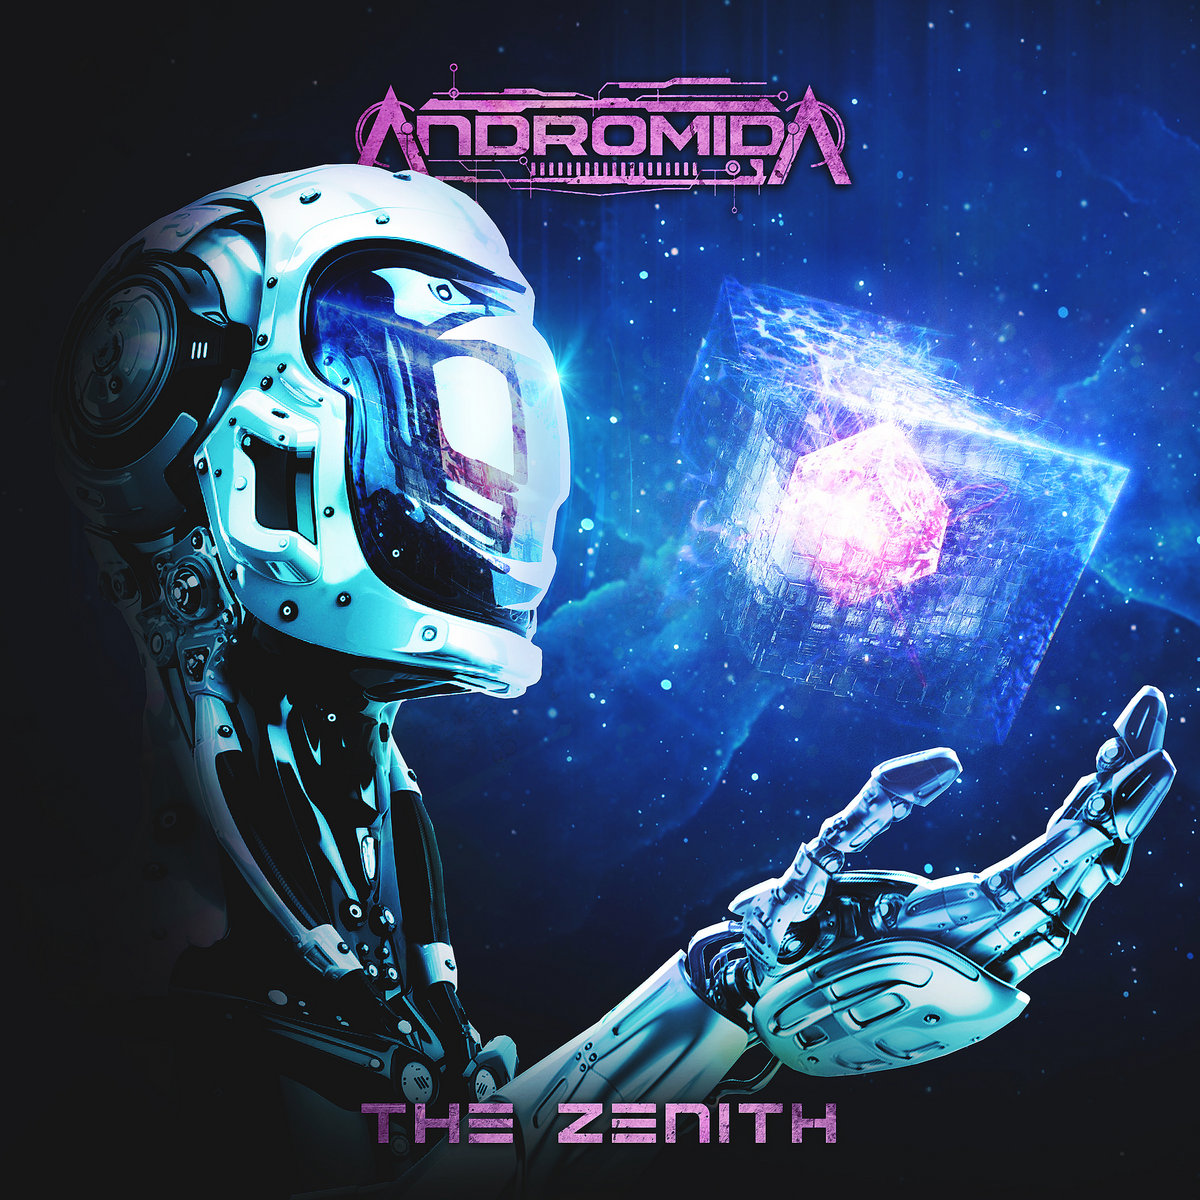 The Zenith by Andromida